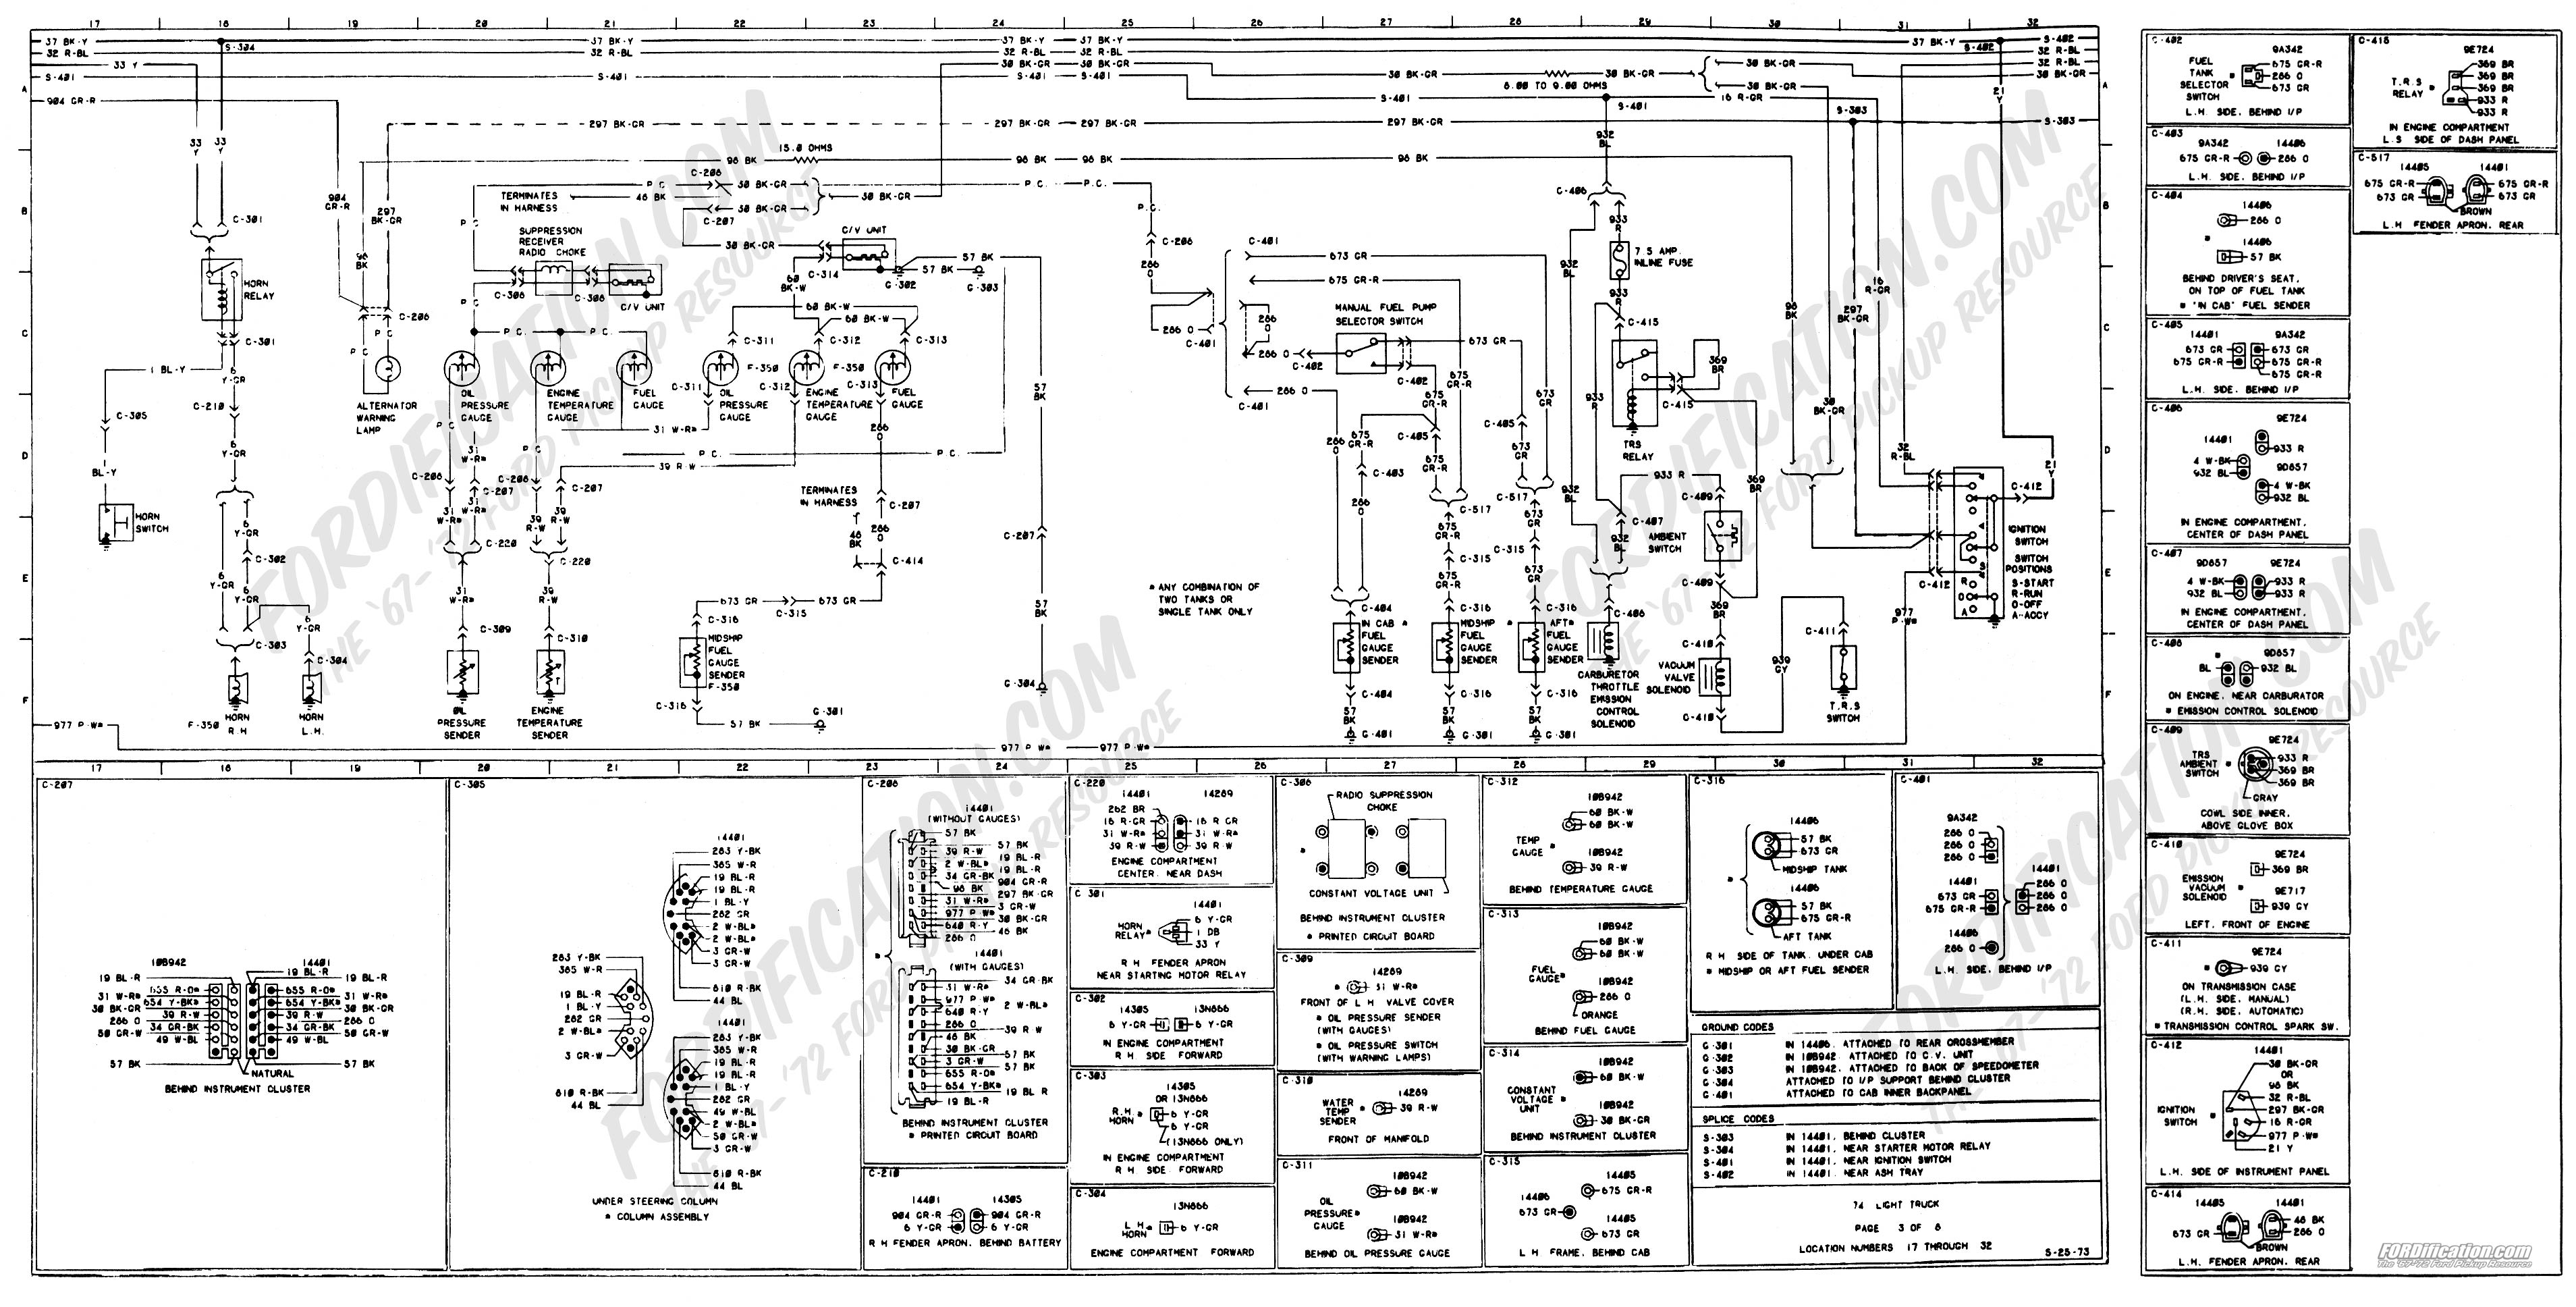 wiring_74master_3of8 1973 1979 ford truck wiring diagrams & schematics fordification net ford truck wiring schematics at bayanpartner.co